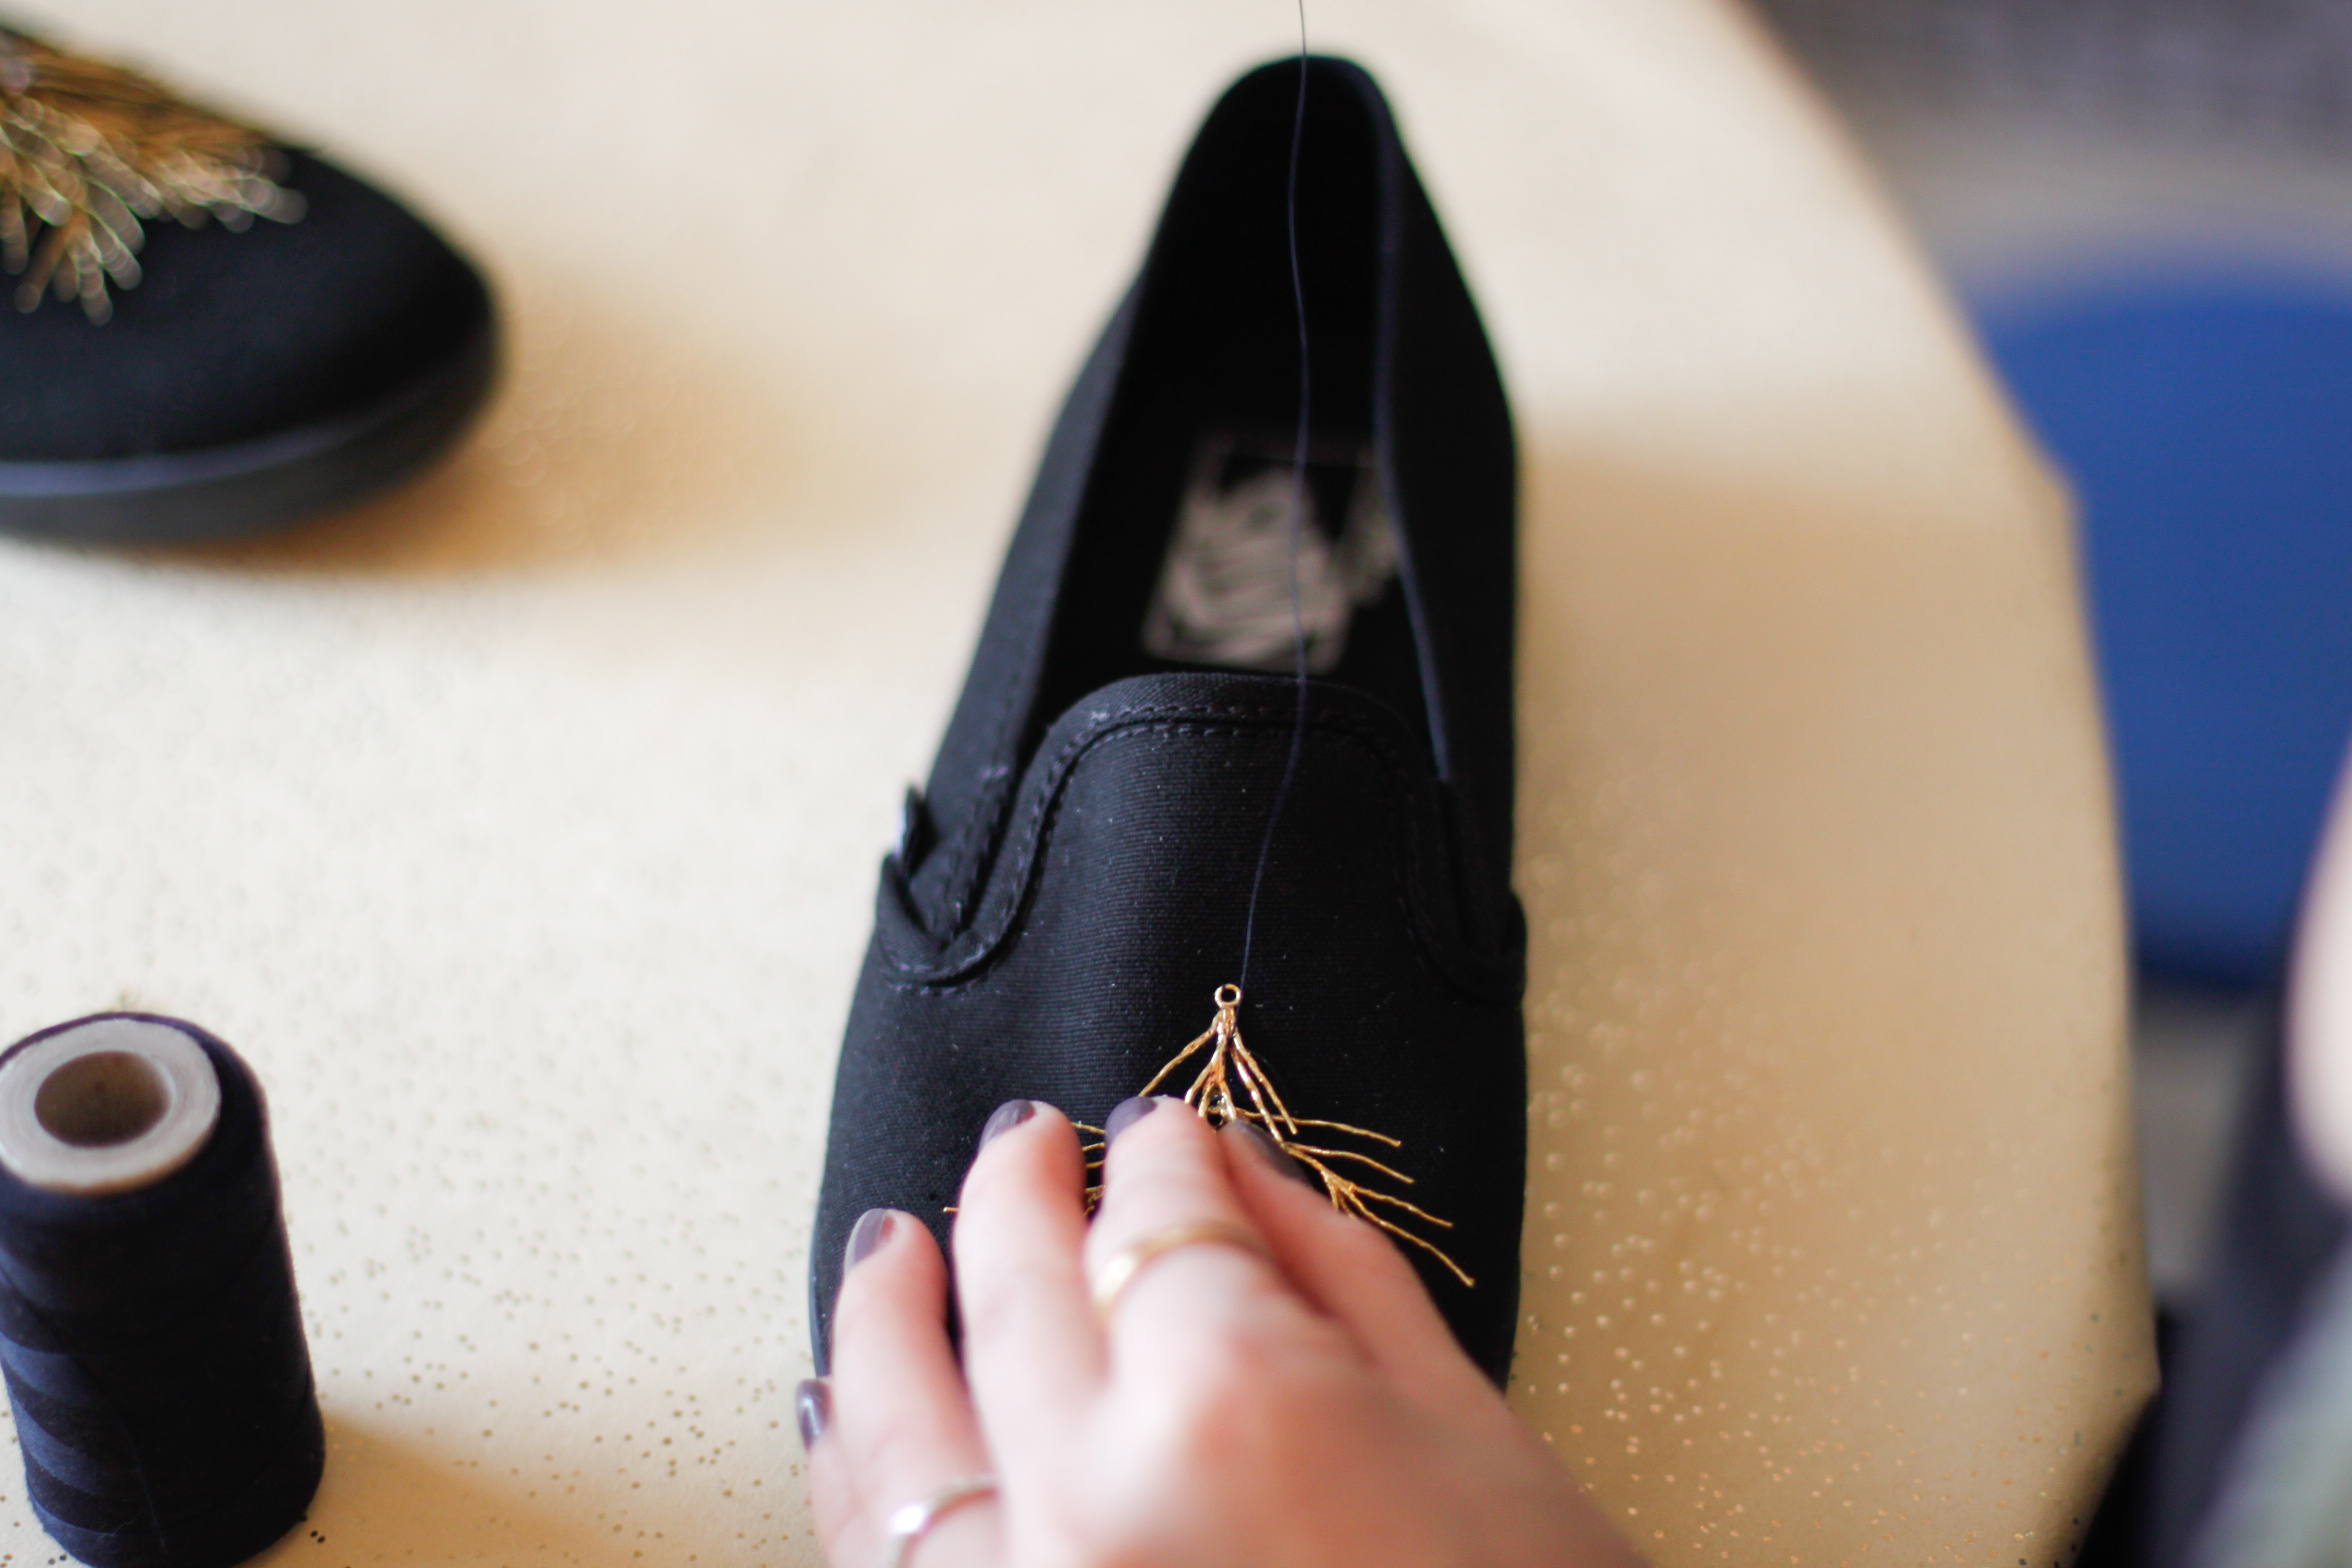 DIY sneakers needle and thread